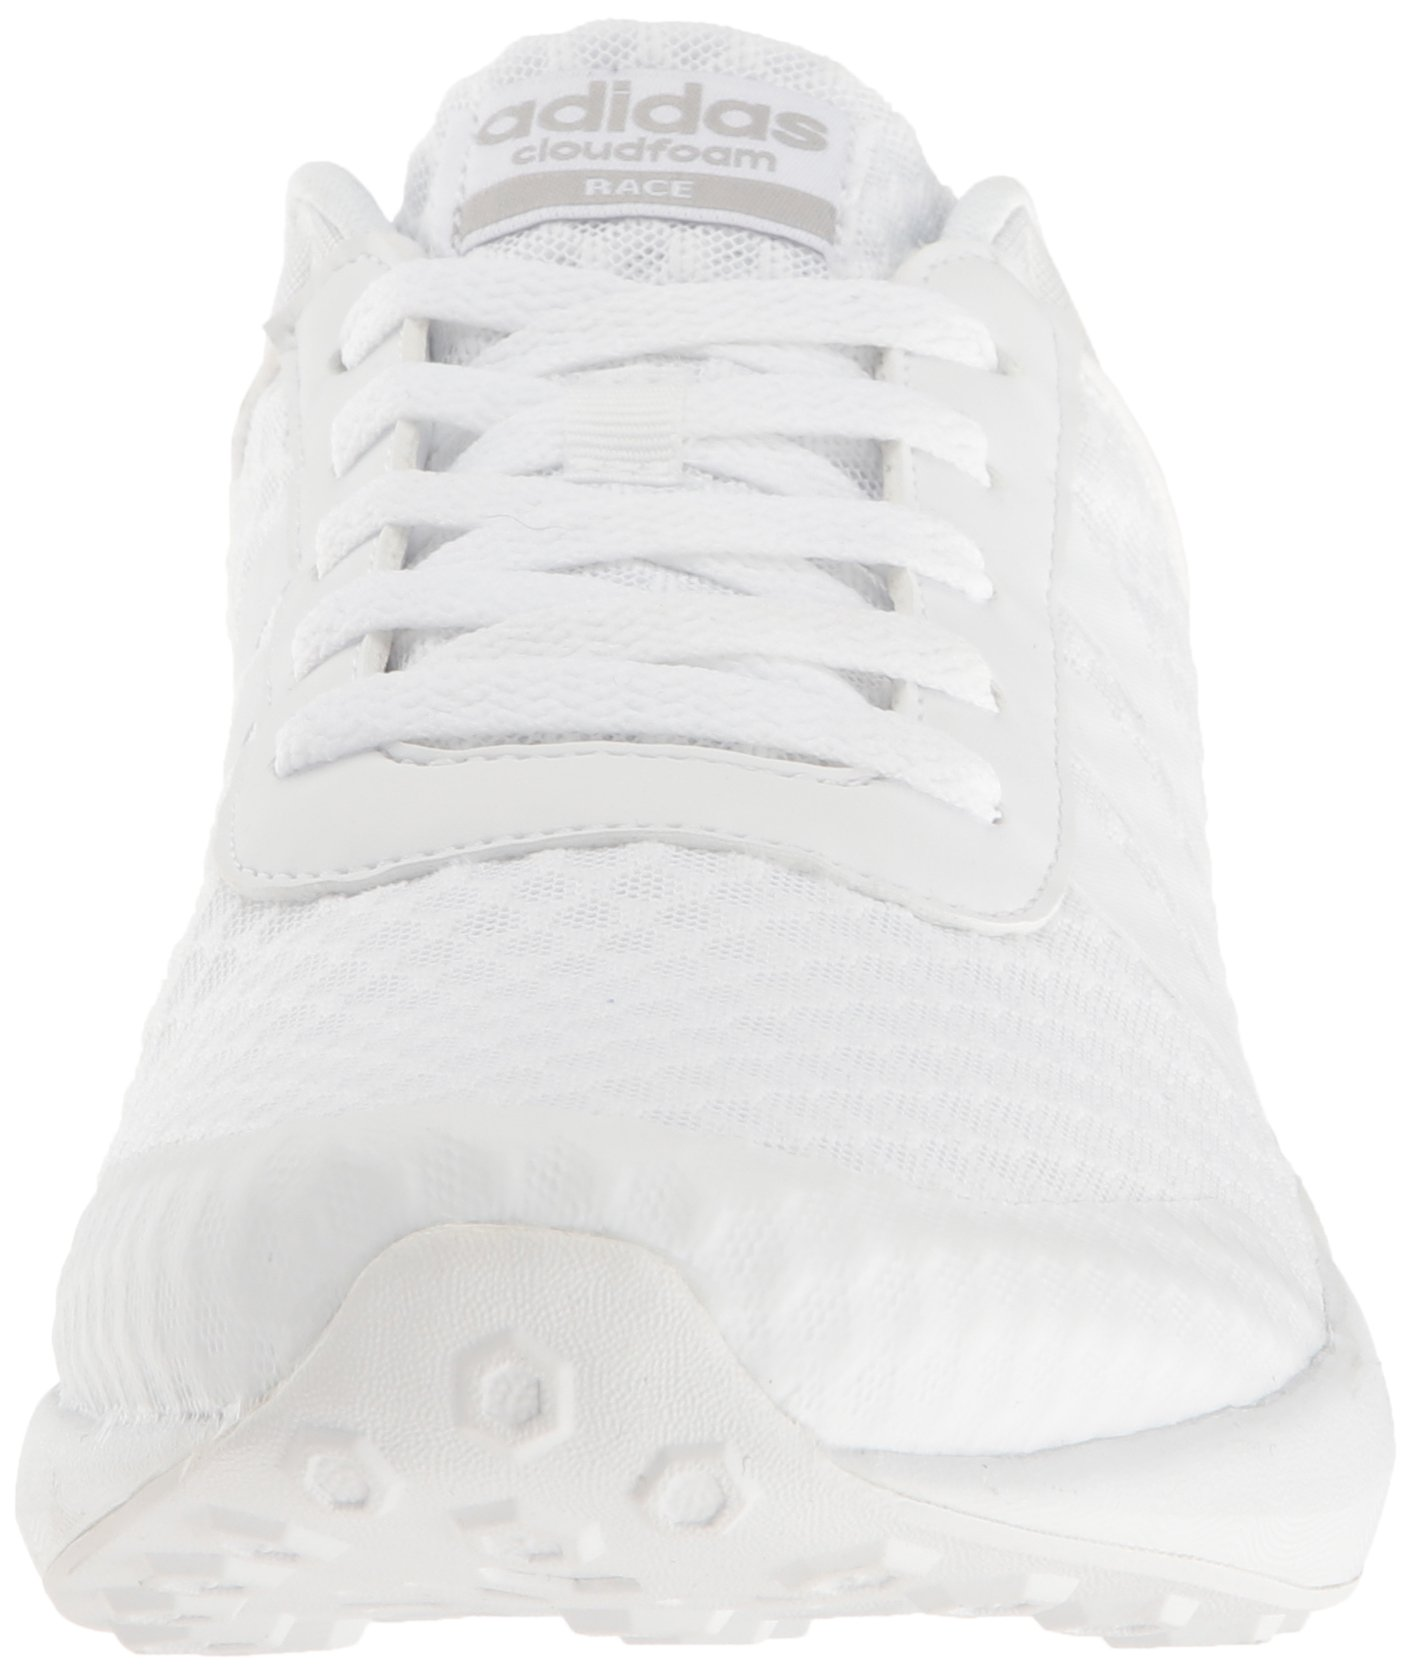 adidas Men's Cloudfoam Race Running Shoe, White/Clear Onix, 9 D-Medium by adidas (Image #4)